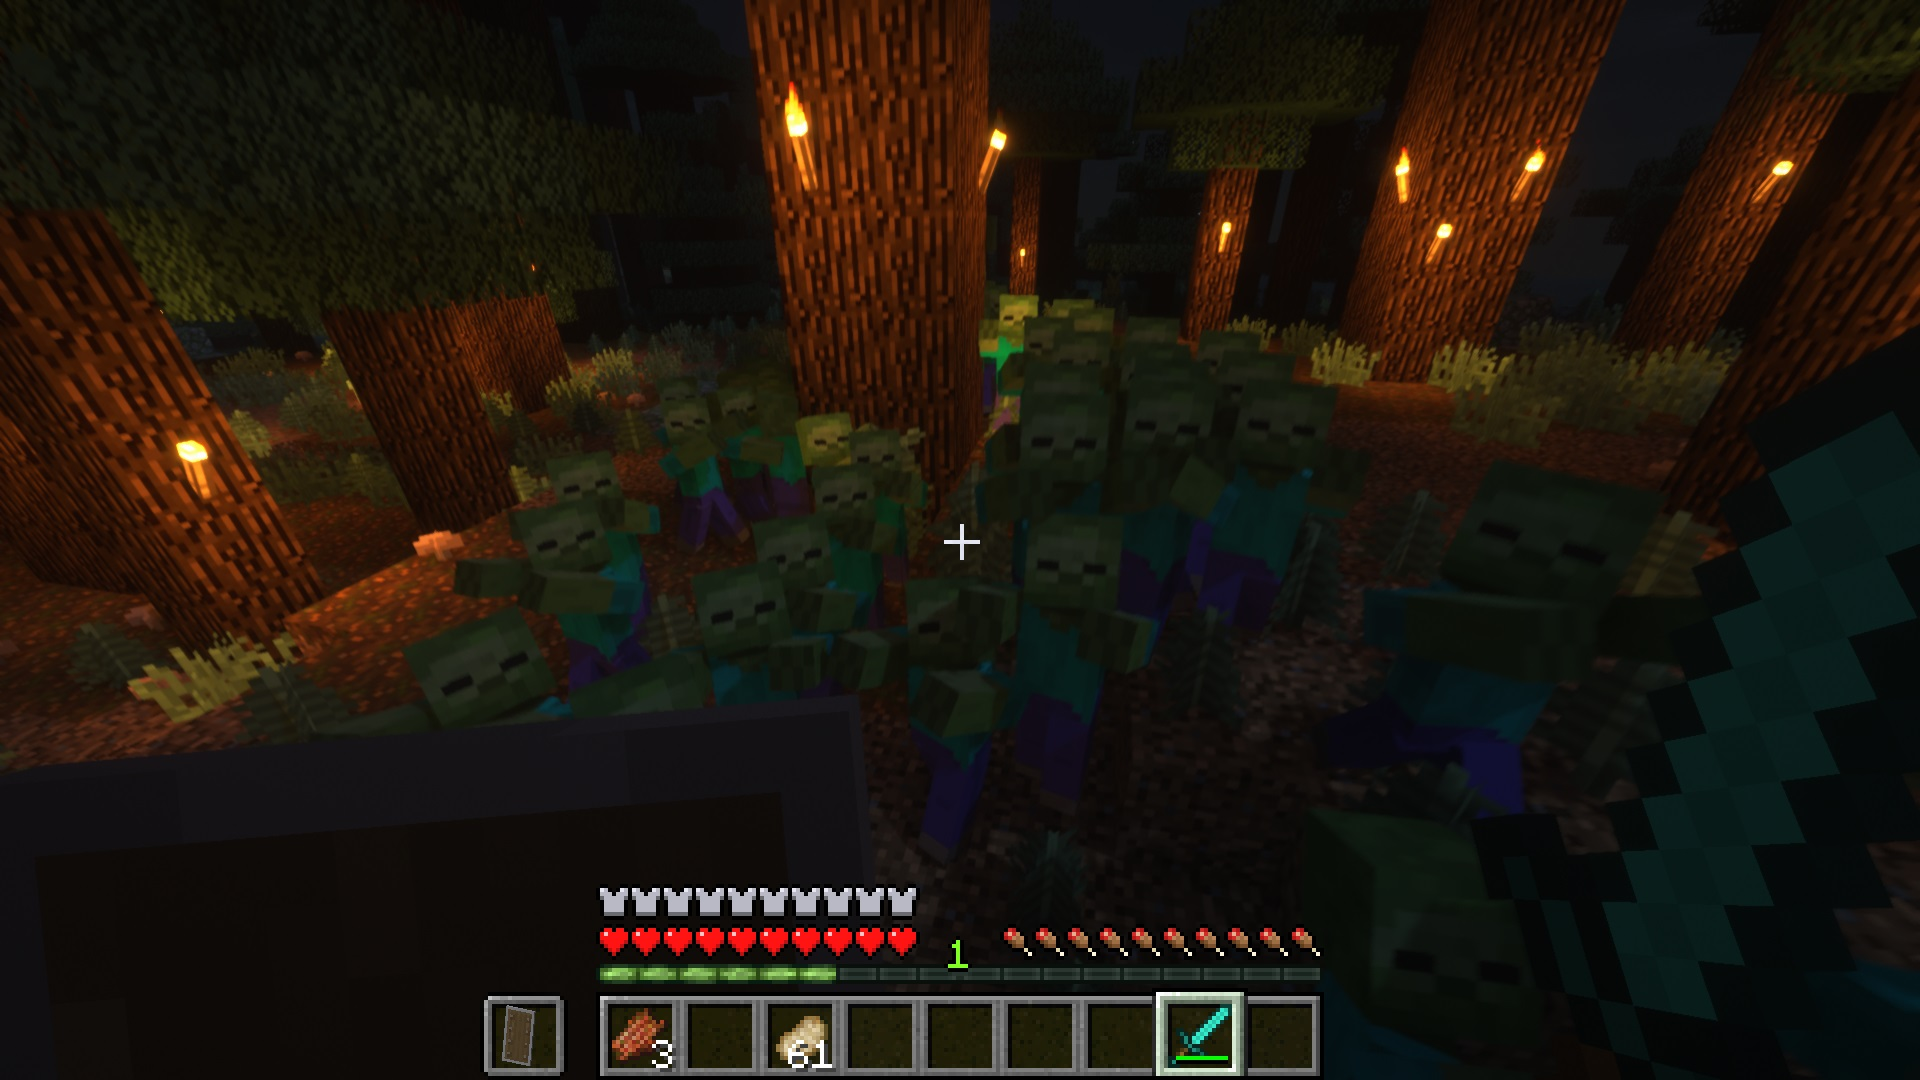 Top 12] Minecraft Zombie Apocalypse Mods That Are Awesome  GAMERS